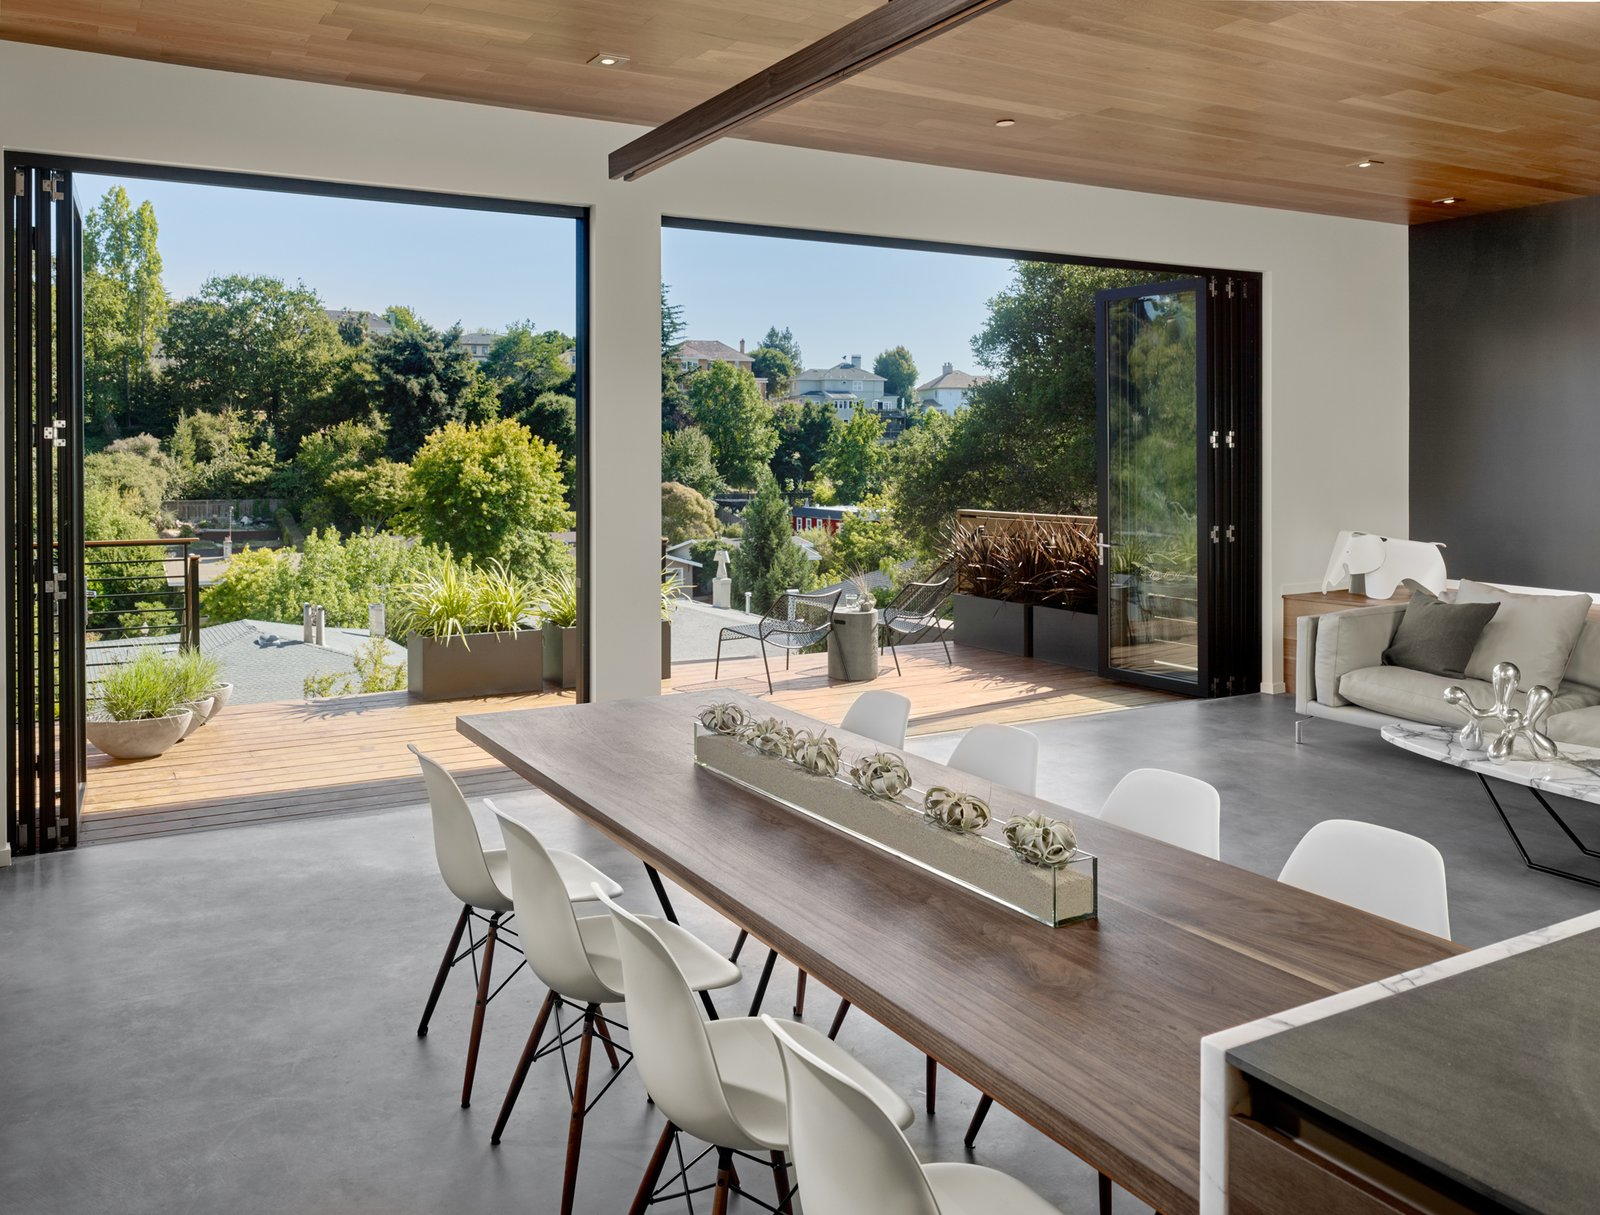 The foldings doors are by La Cantina, which expand to a redwood deck and the view across the valley. Tagged: Dining Room, Table, and Chair.  Trestle Glen Modern by Knock Architecture + Design